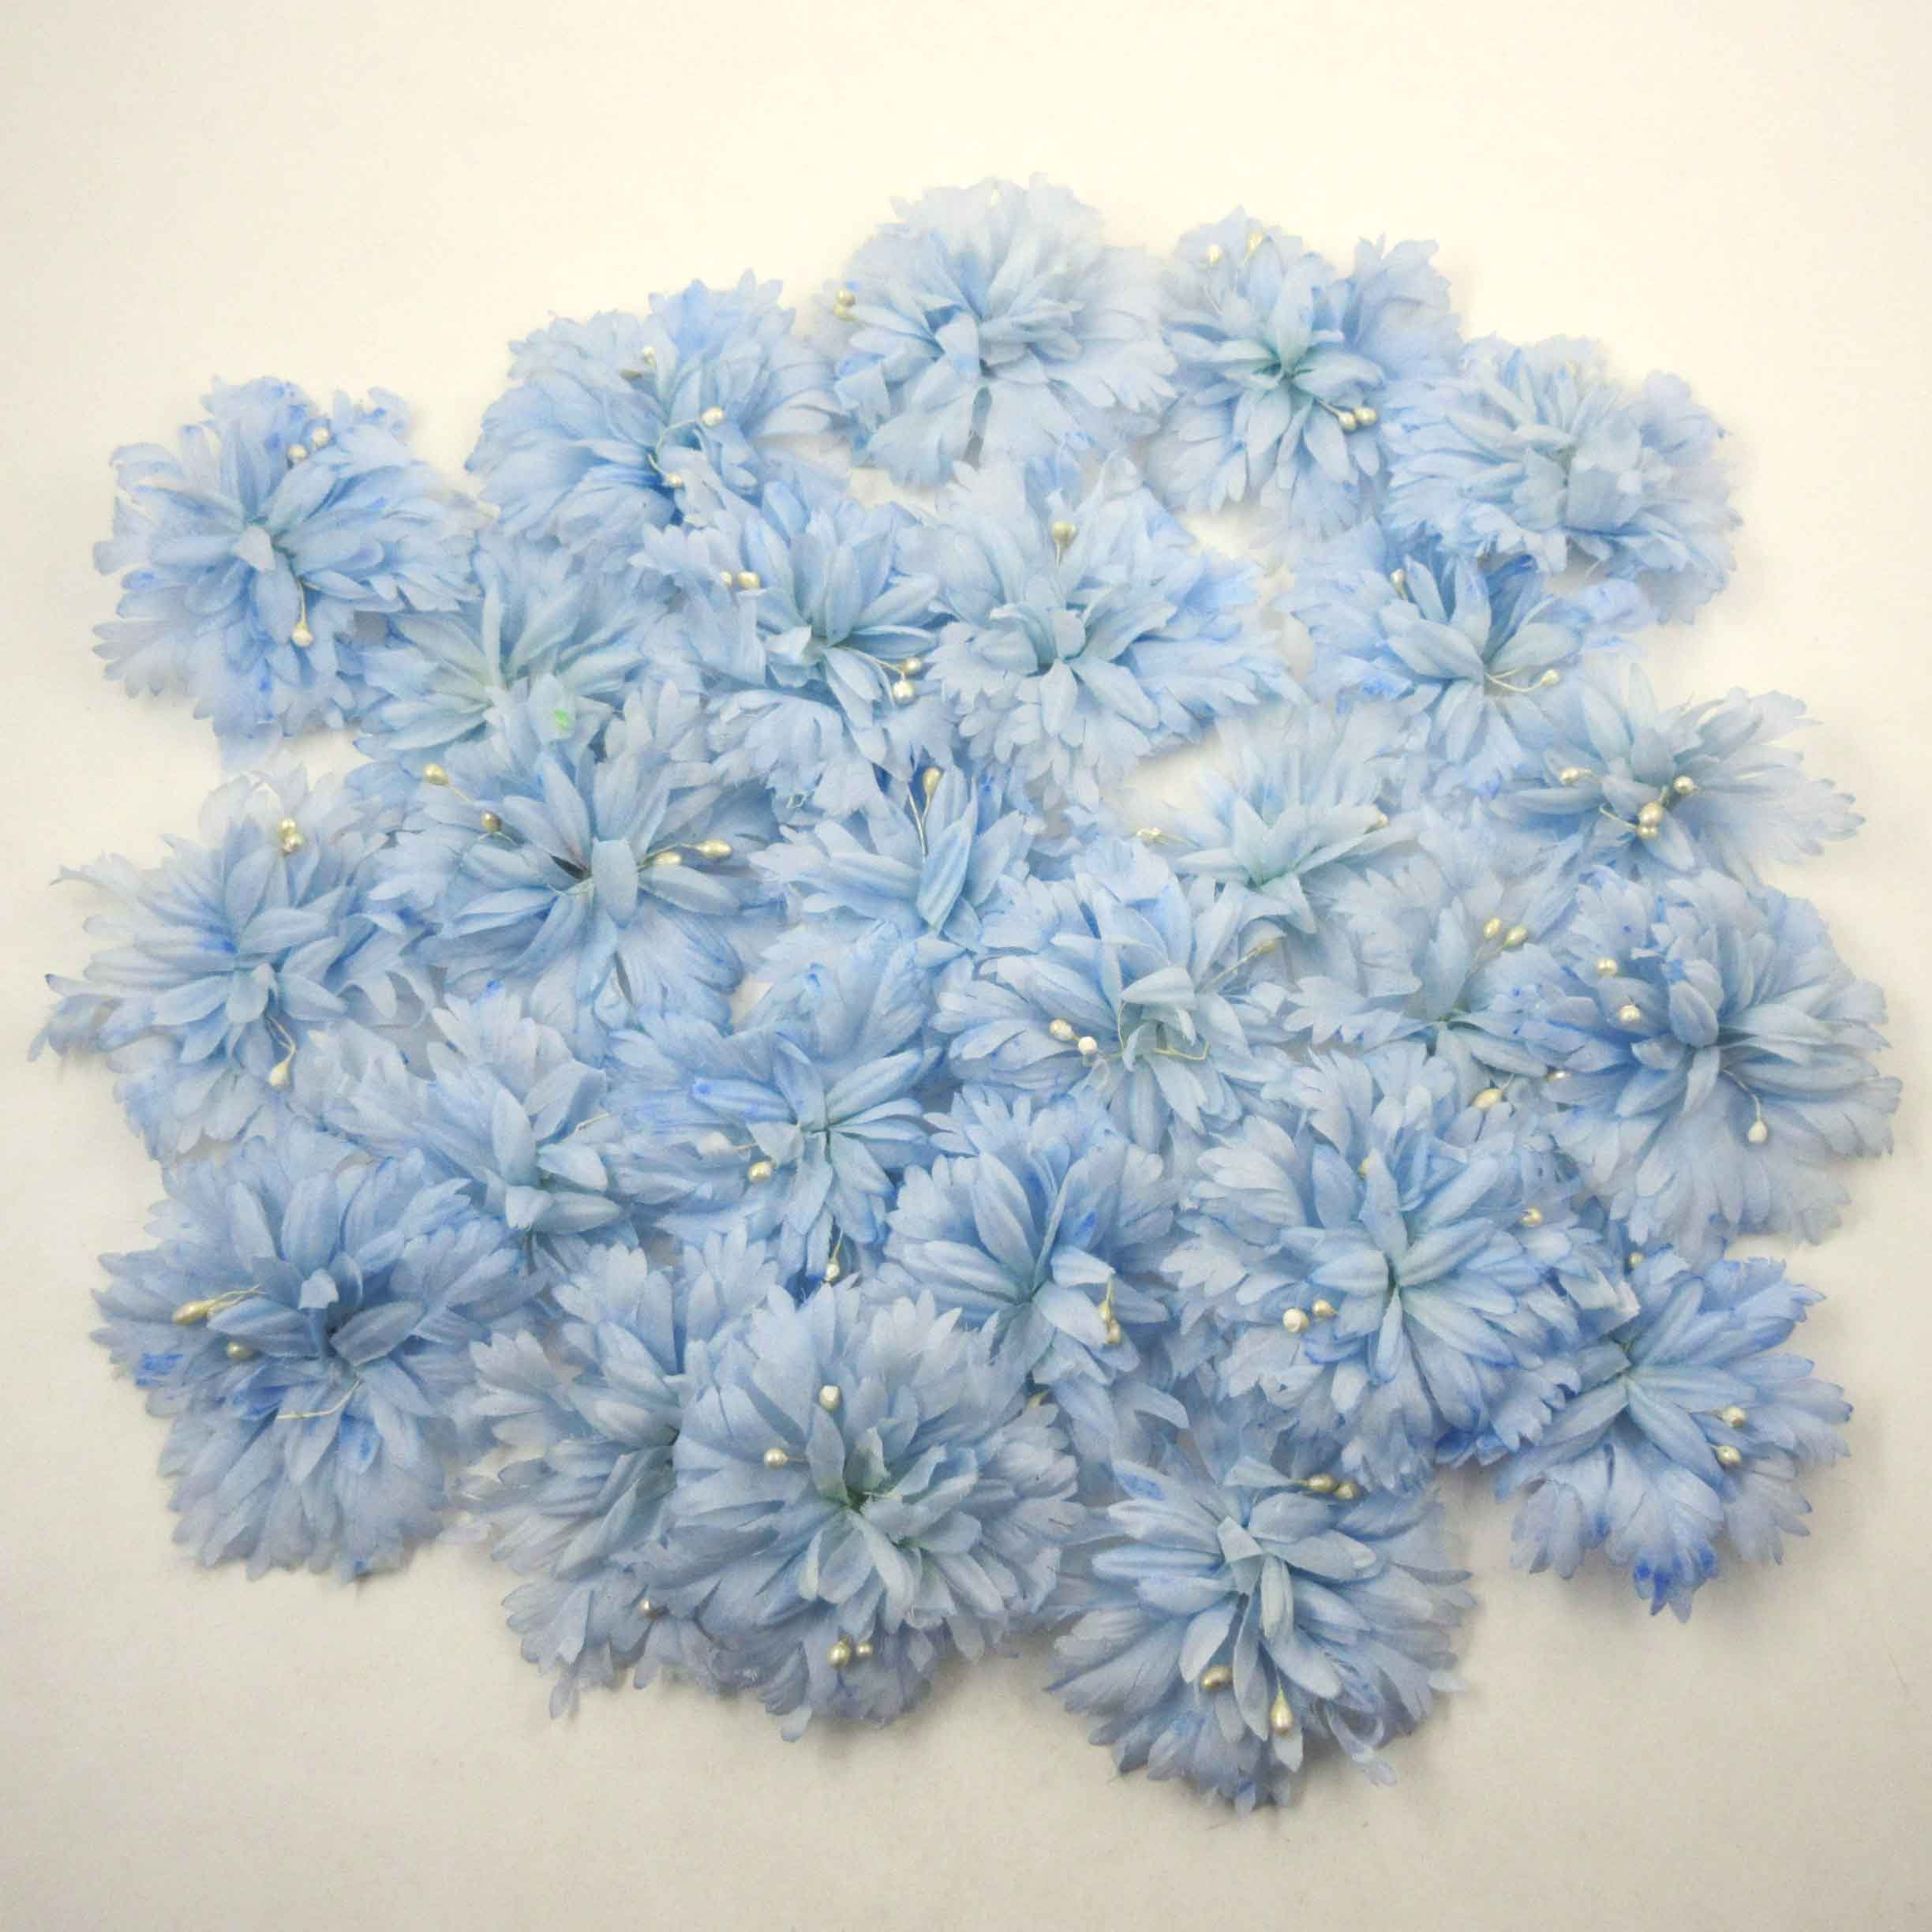 Vintage Light Blue Flowers For Millinery Hats Corsage Crafting Etsy